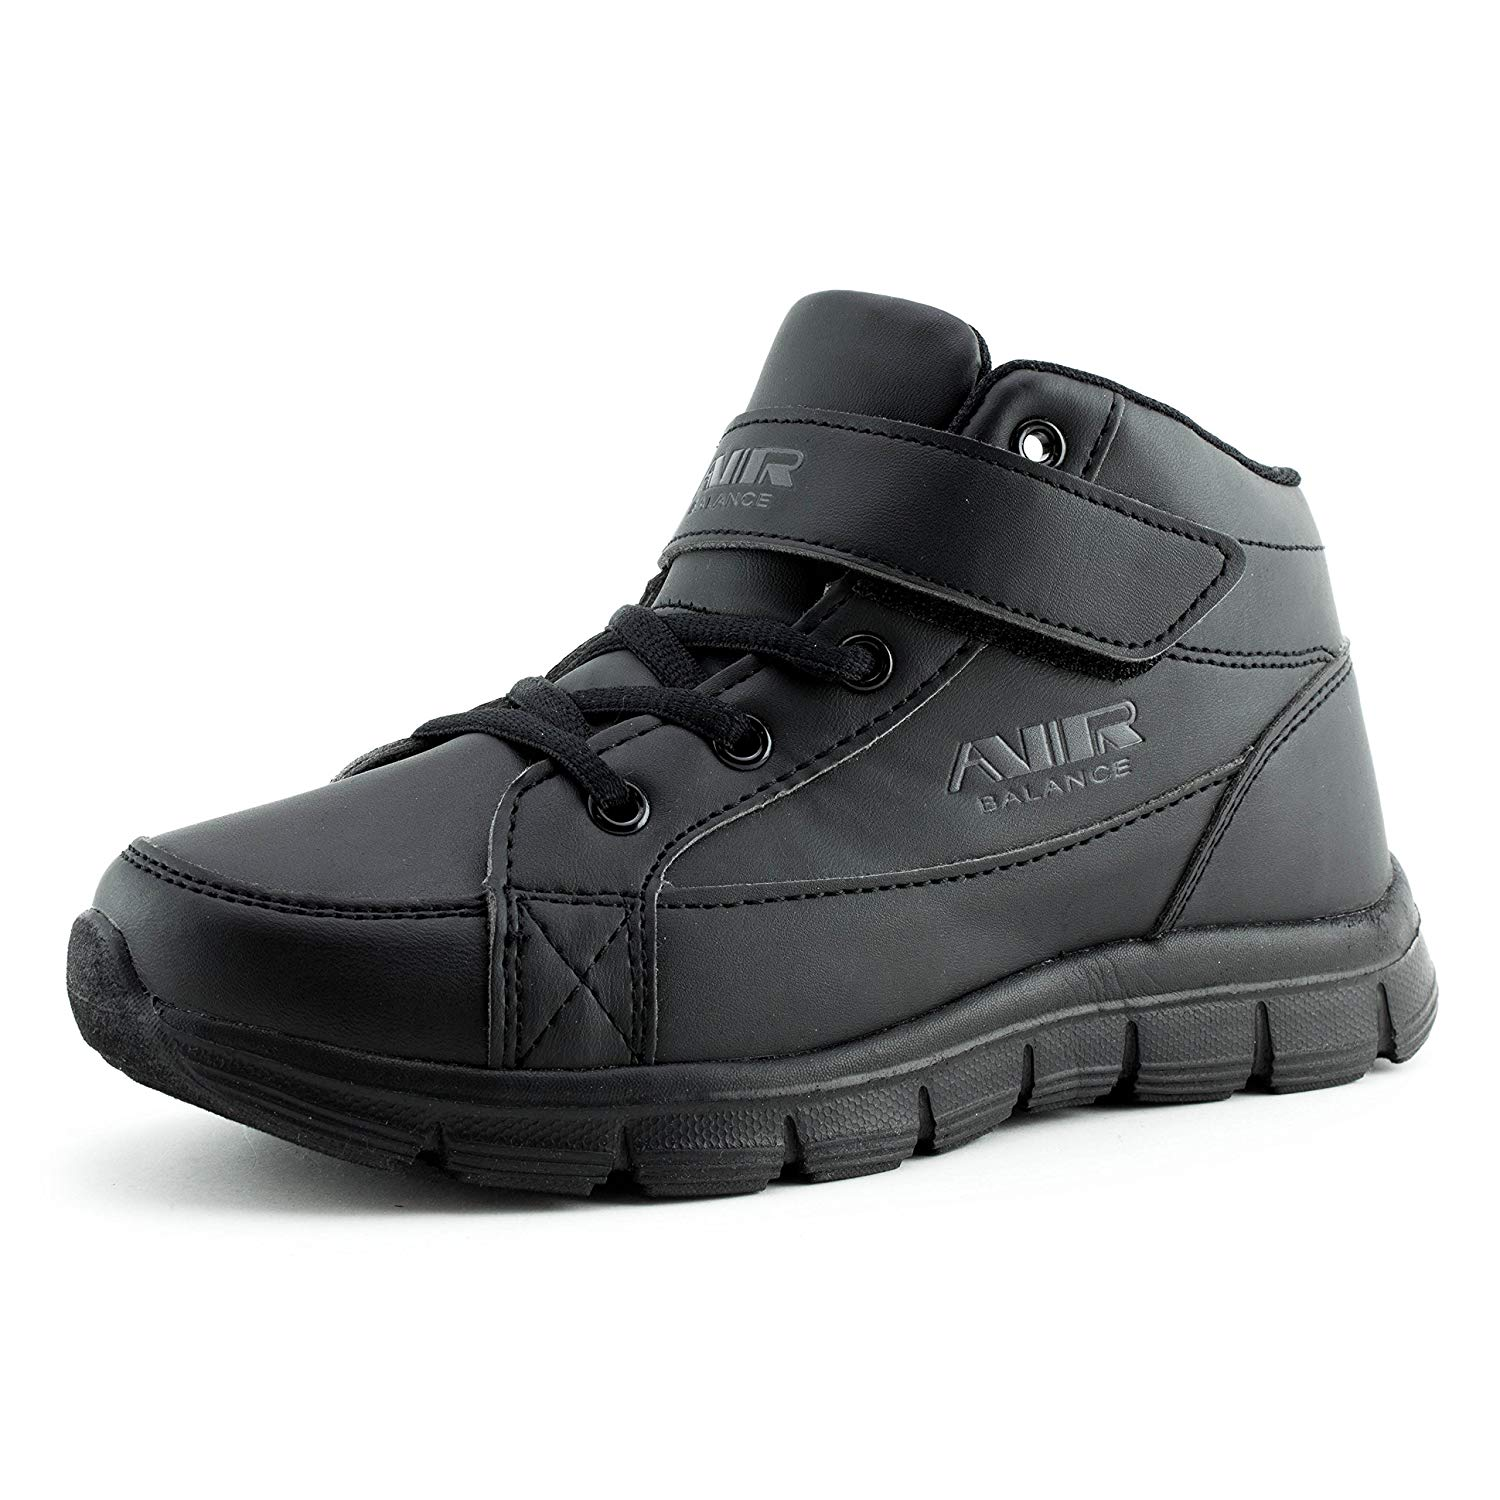 16a4b7a6291 Get Quotations · Air Balance Unisex Solid Color Hook and Loop Fastner  Walking Shoes Sneakers (Toddler Little